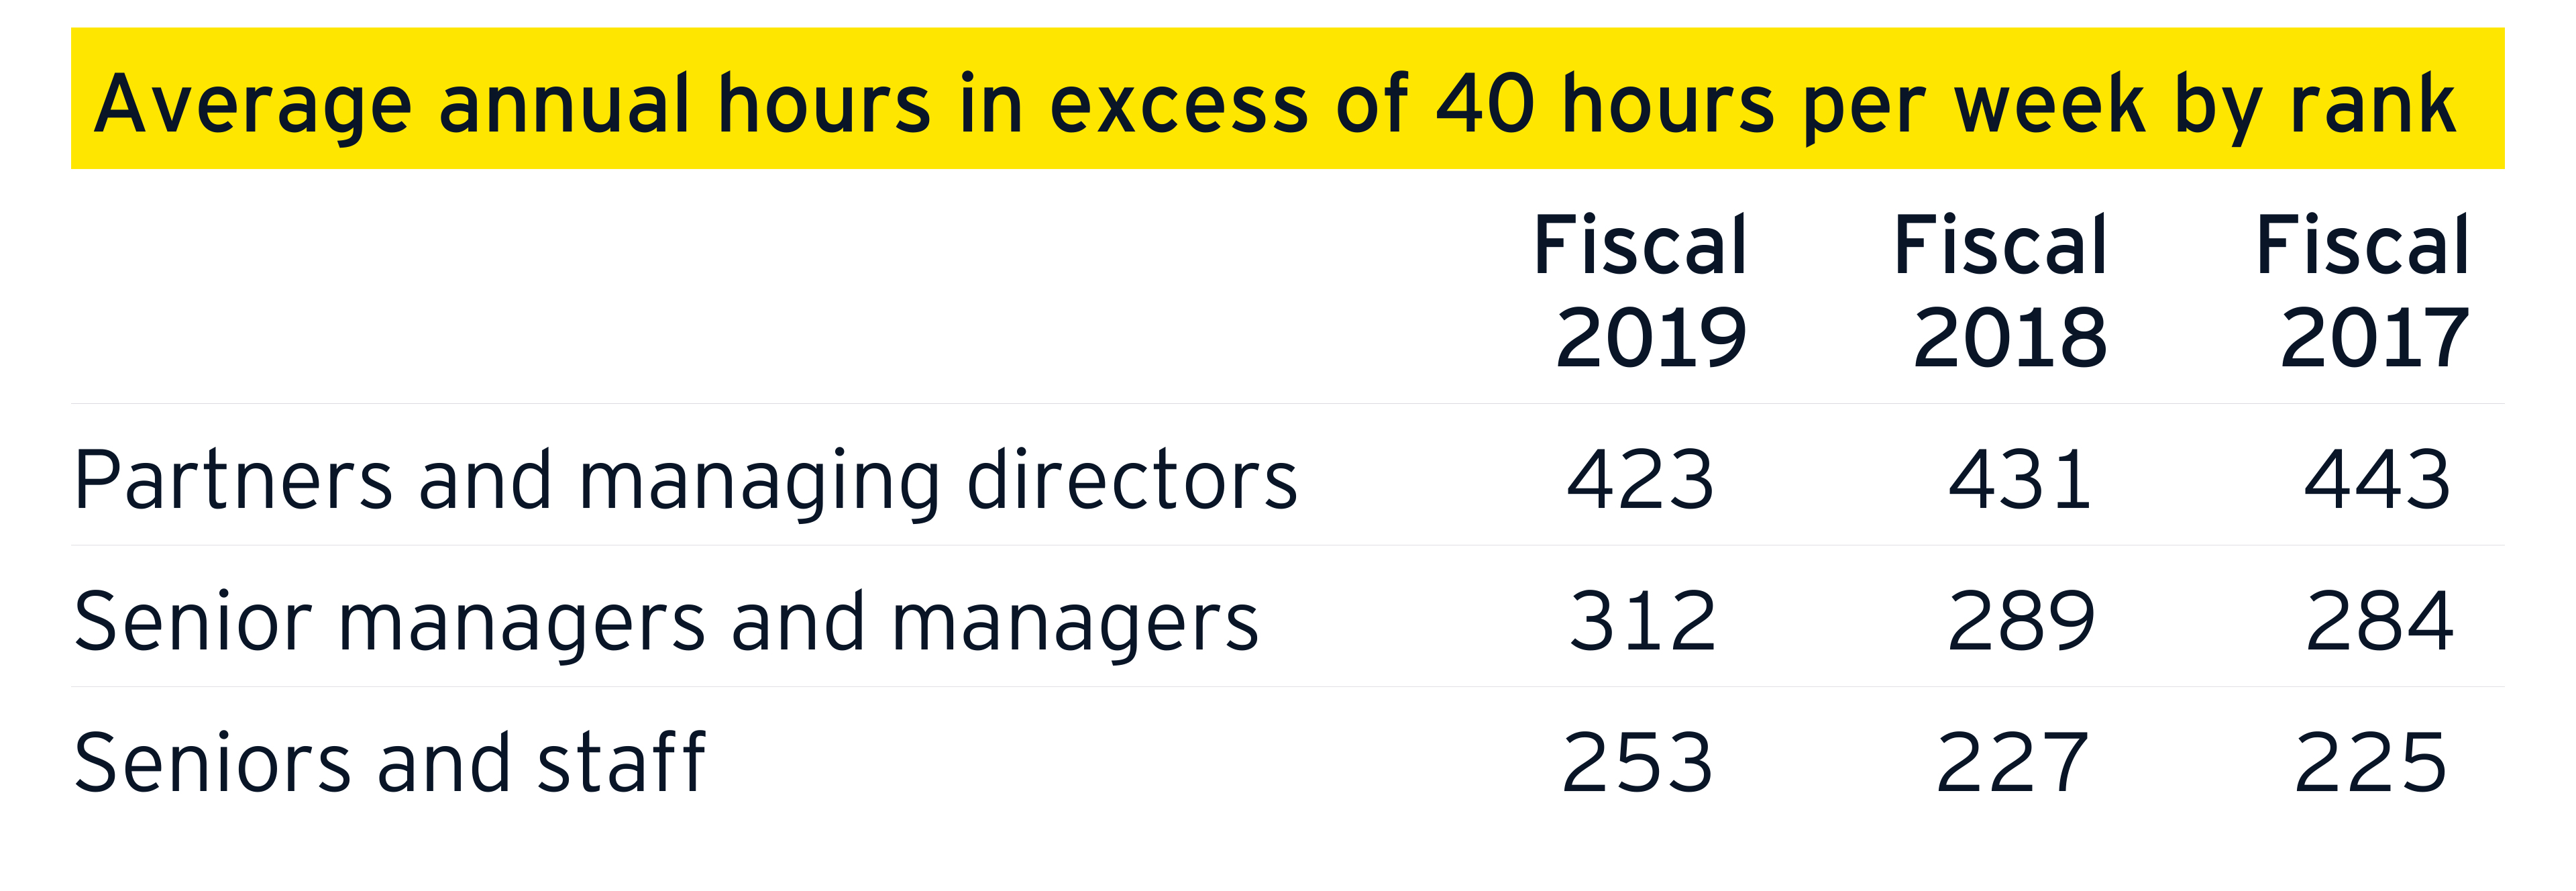 Average annual hours in excess of 40 hours per week by rank